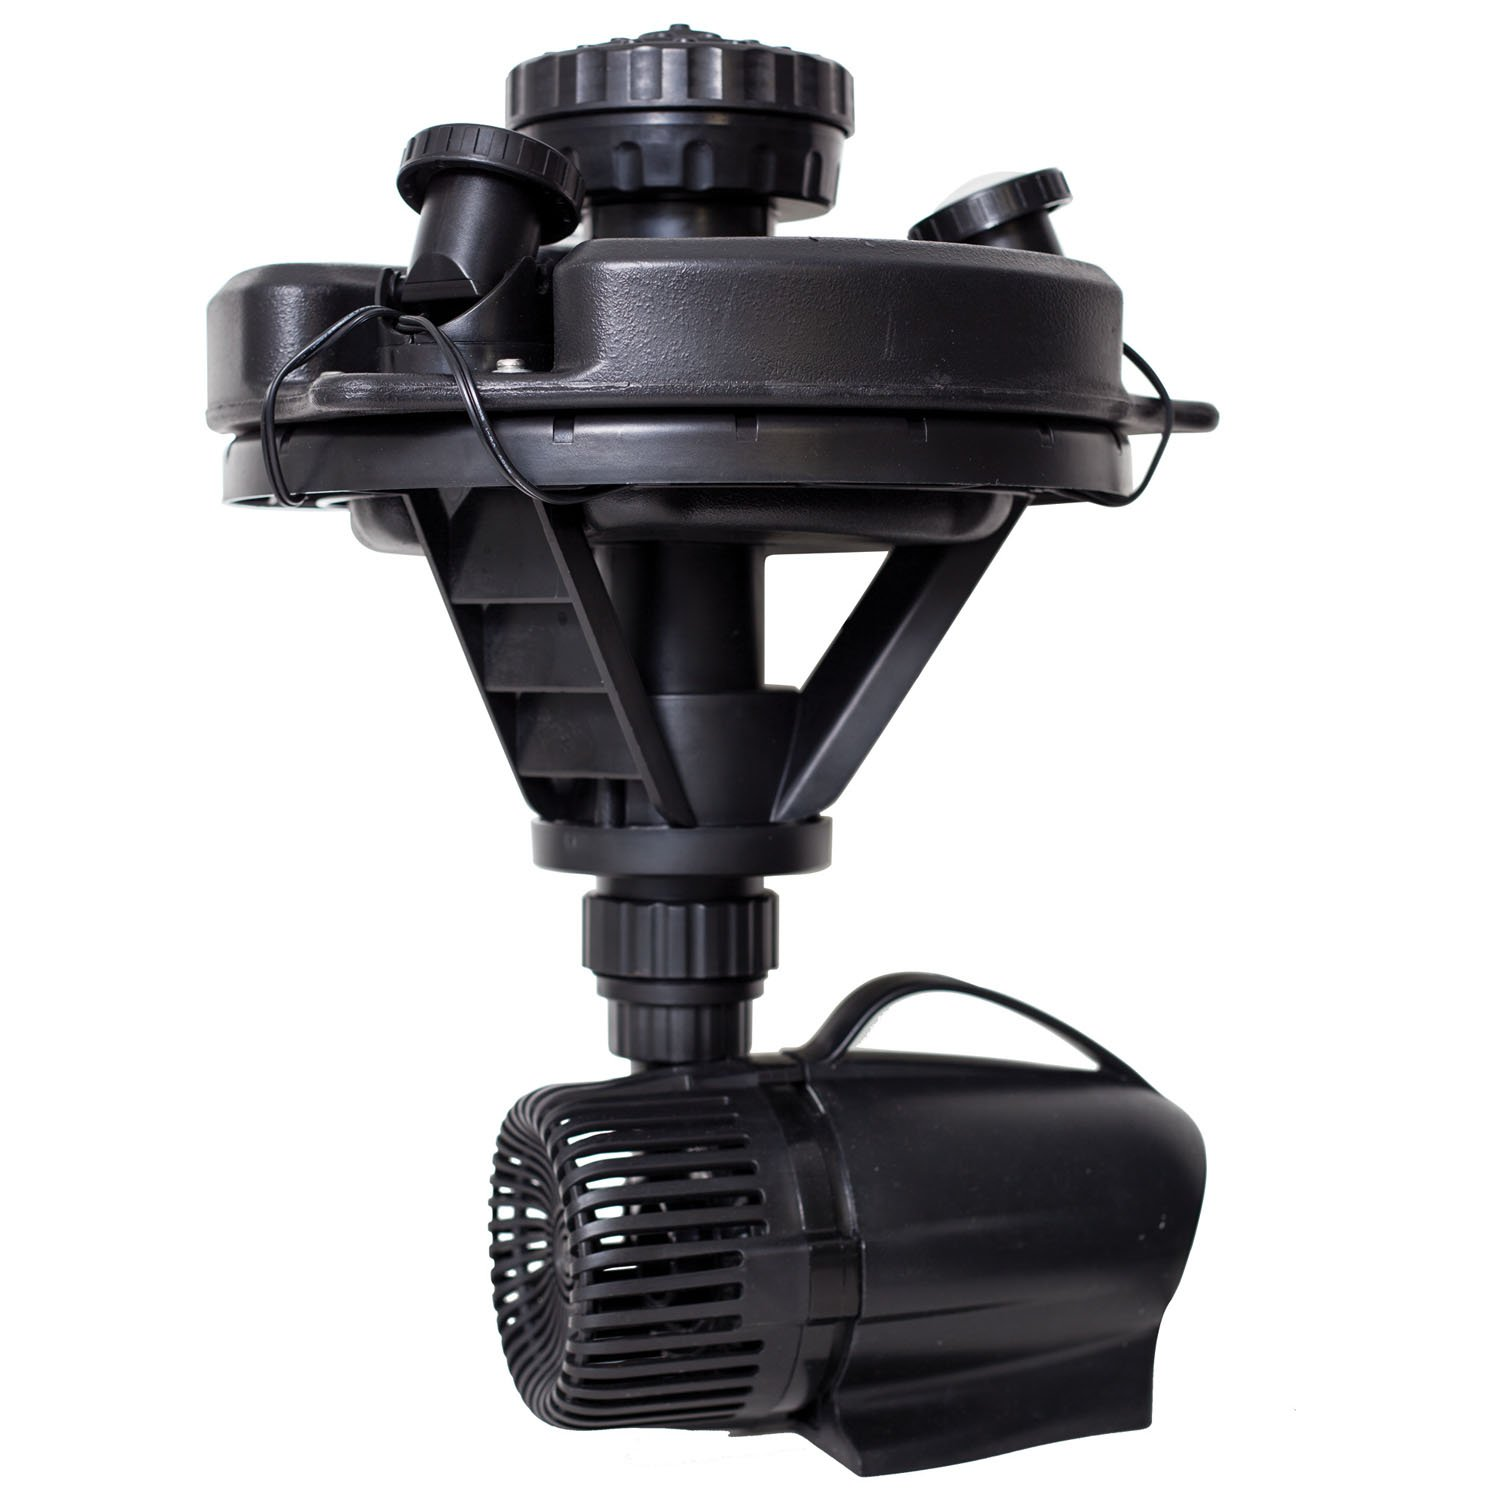 Pond Boss DFTN12003L Floating Fountain With Lights, 50 Foot Power Cord, 1/4 hp by pond boss